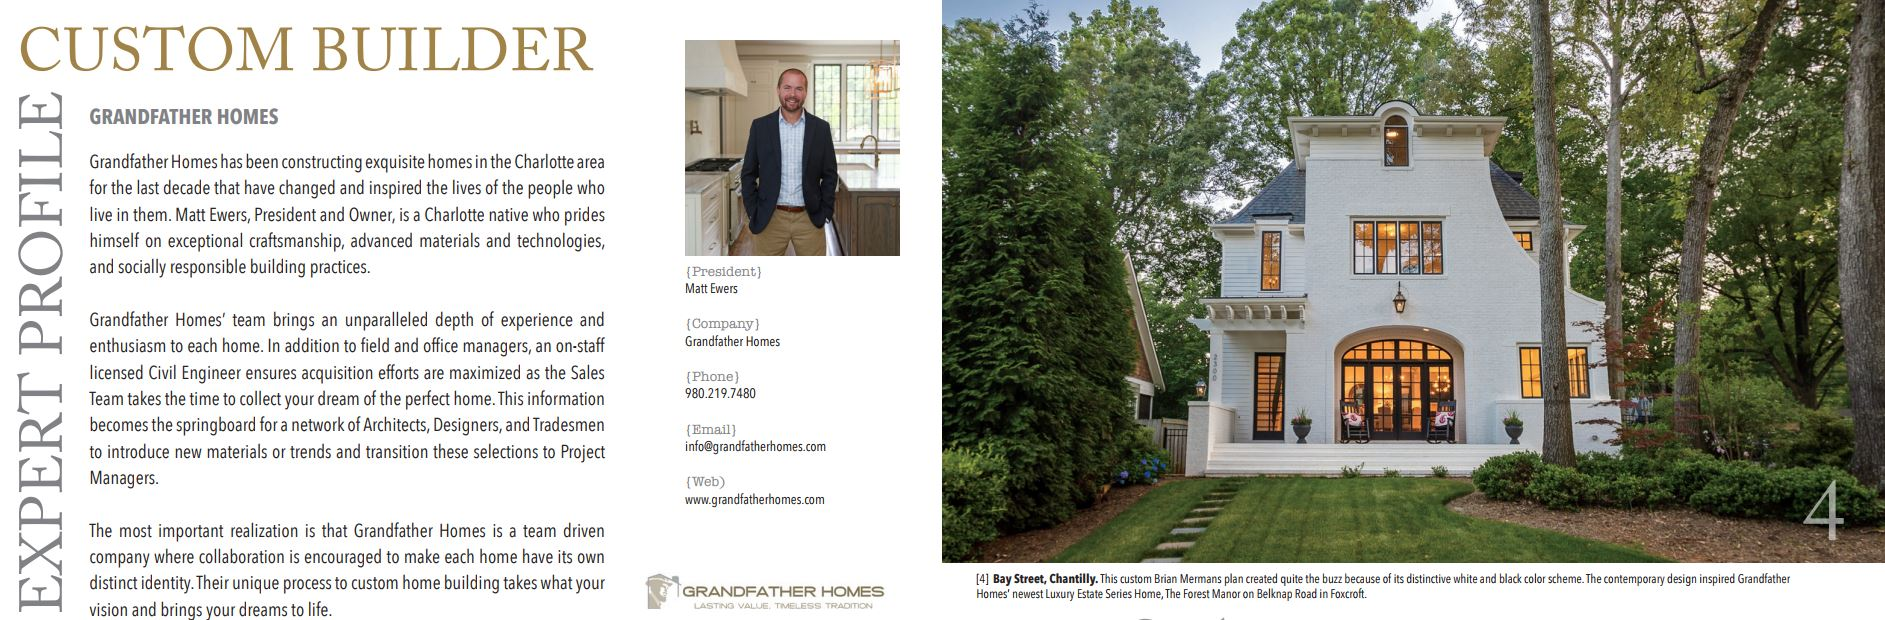 As Featured in Luxury Home Magazine: Expert Profile on Grandfather ...